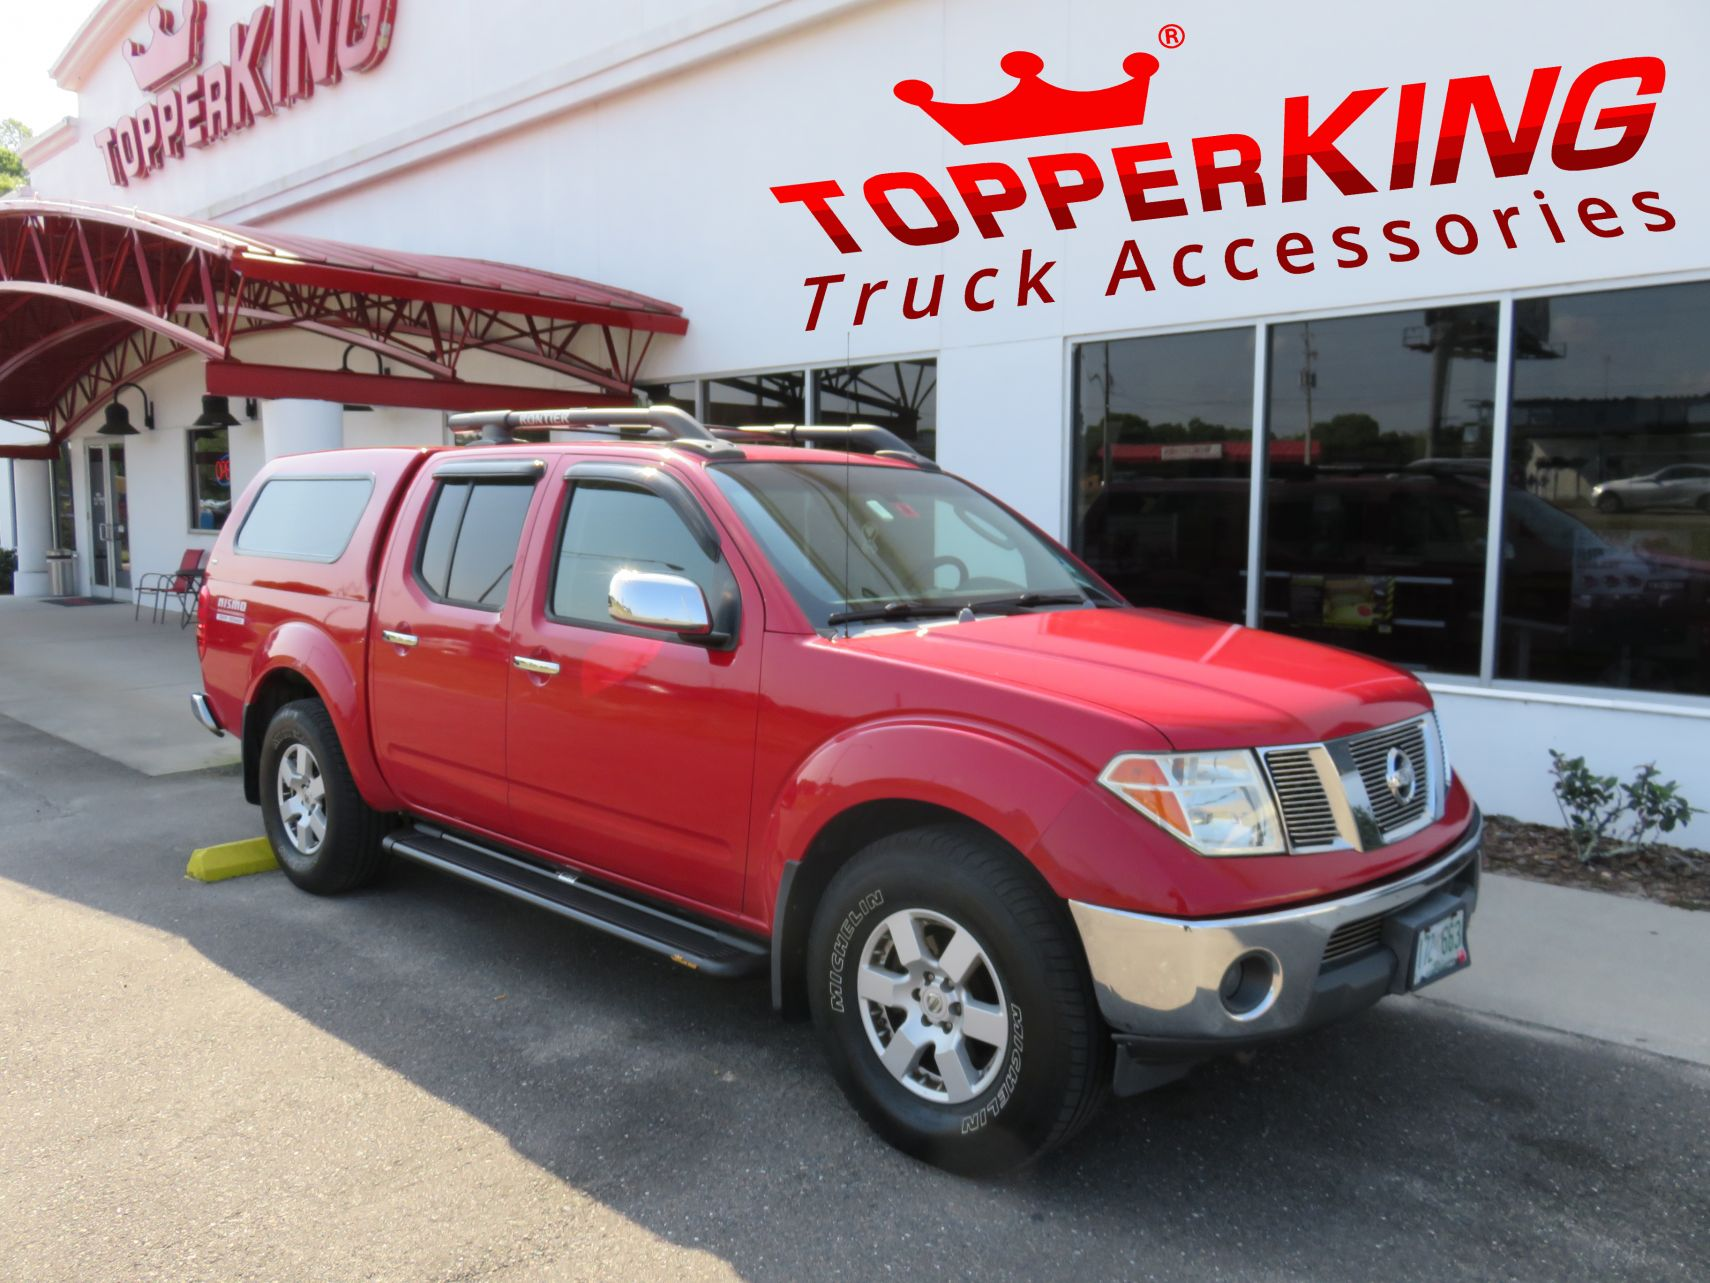 2014 Red Nissan Frontier Ranch Echo Topperking